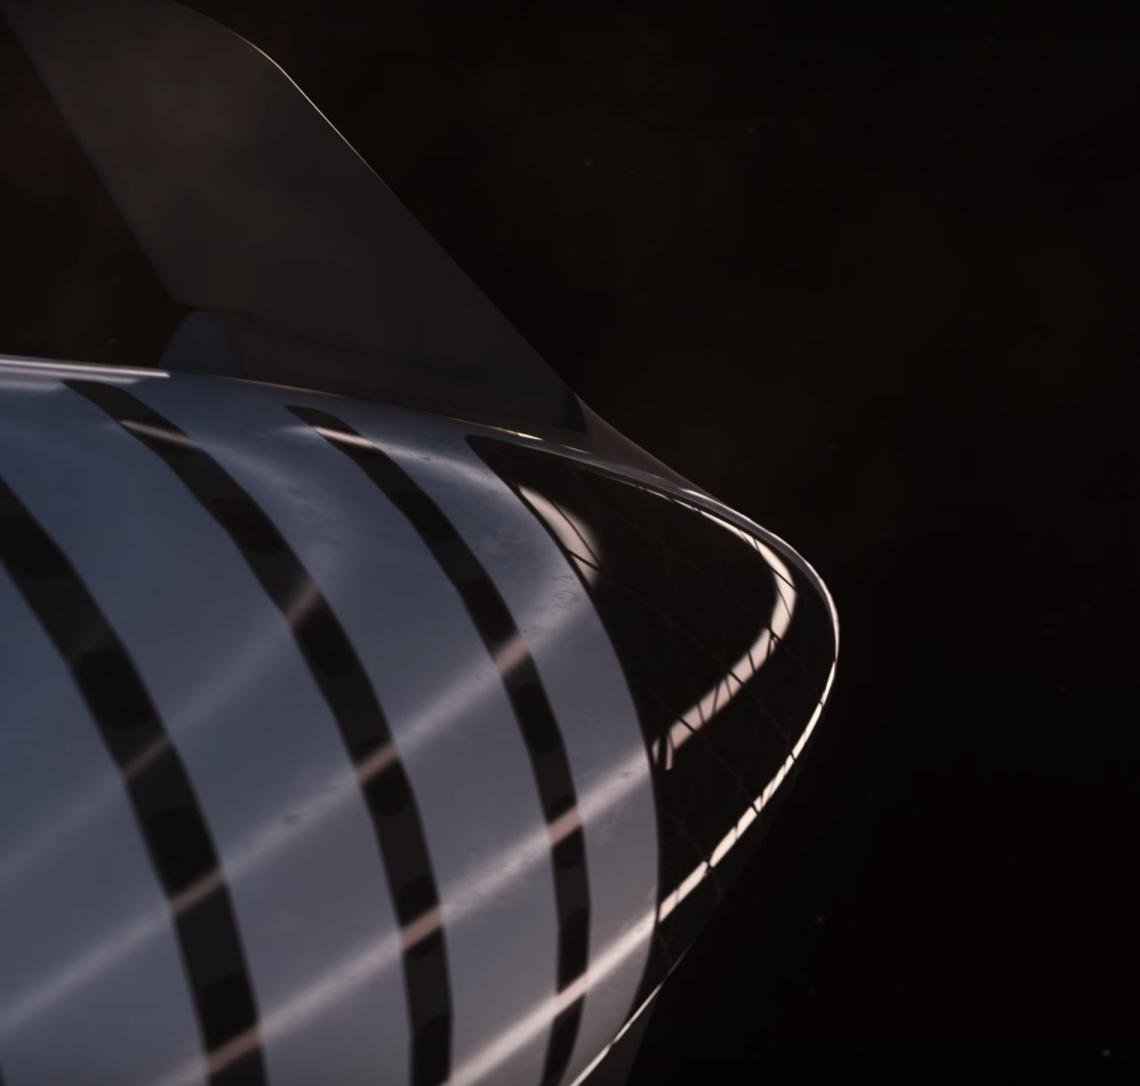 BFR 2018 spaceship nose (SpaceX) 2(c)